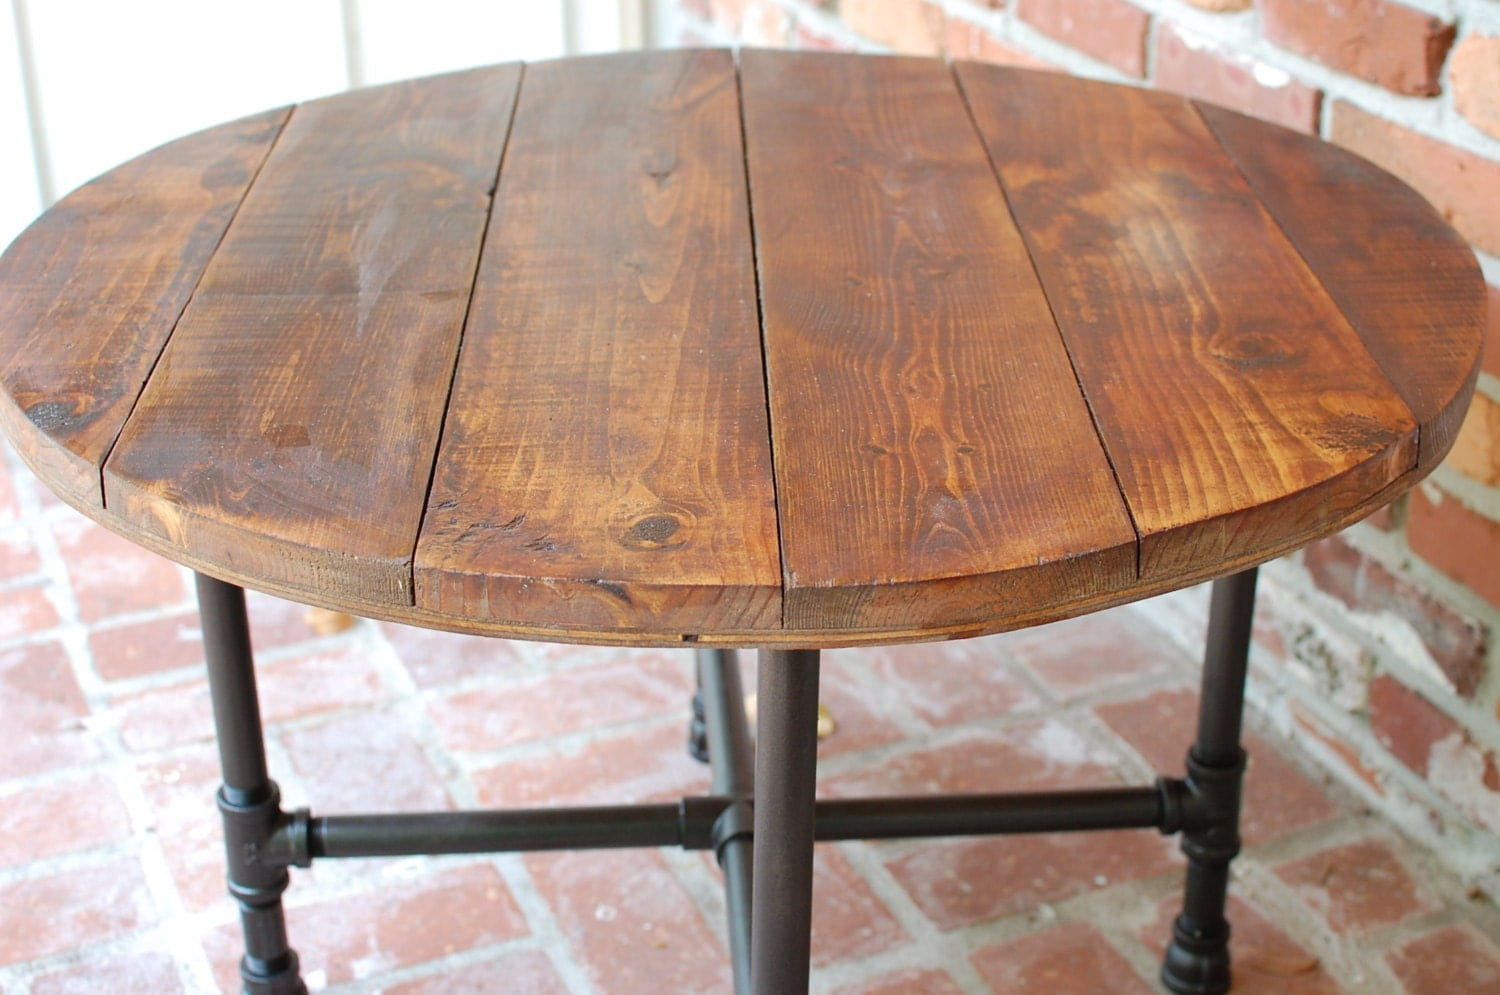 Round Industrial End Table Round Coffee Table Industrial Wood Table 30 By